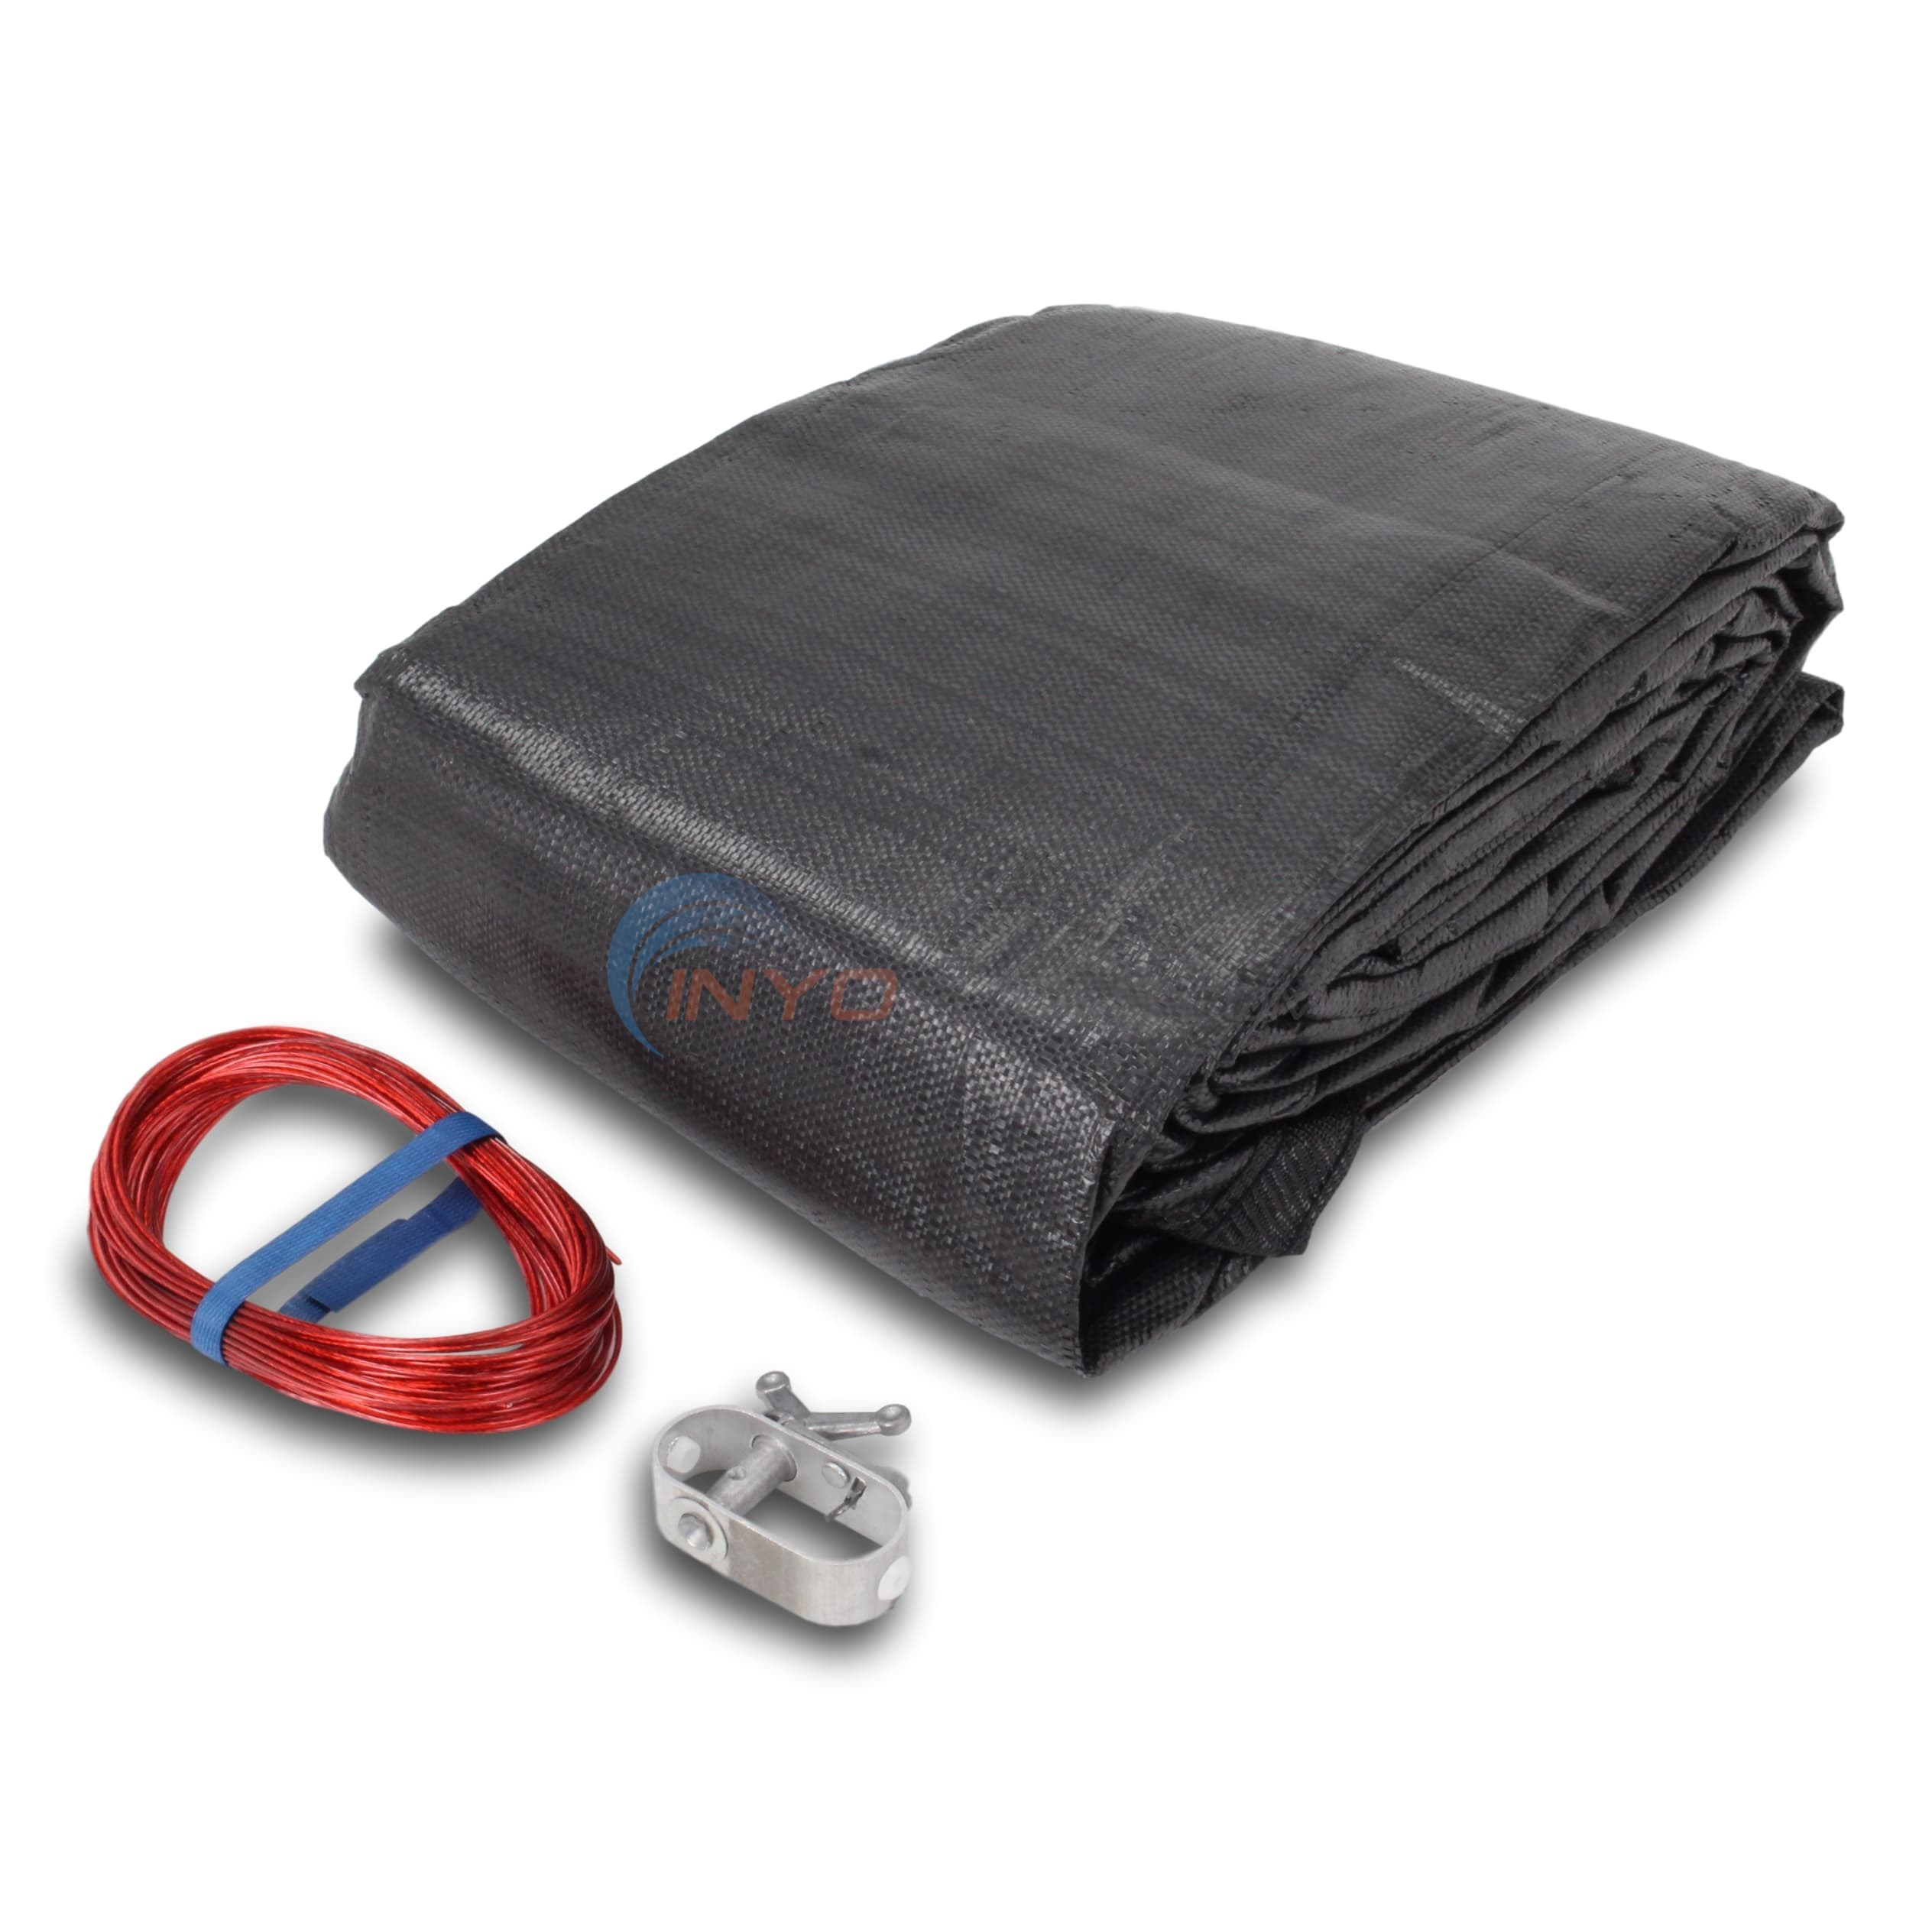 PureLine 8yr Mesh Above Ground Pool Cover 21' Round - PL6906